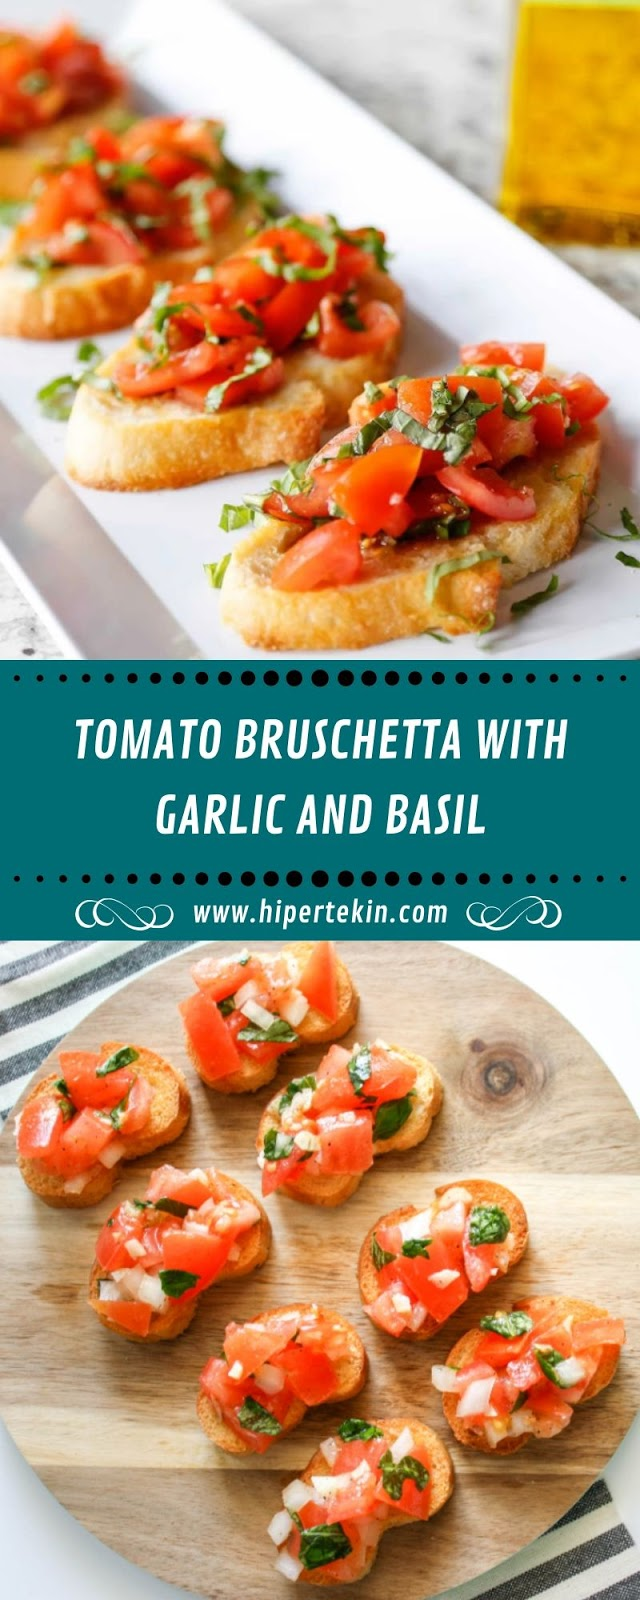 TOMATO BRUSCHETTA WITH GARLIC AND BASIL